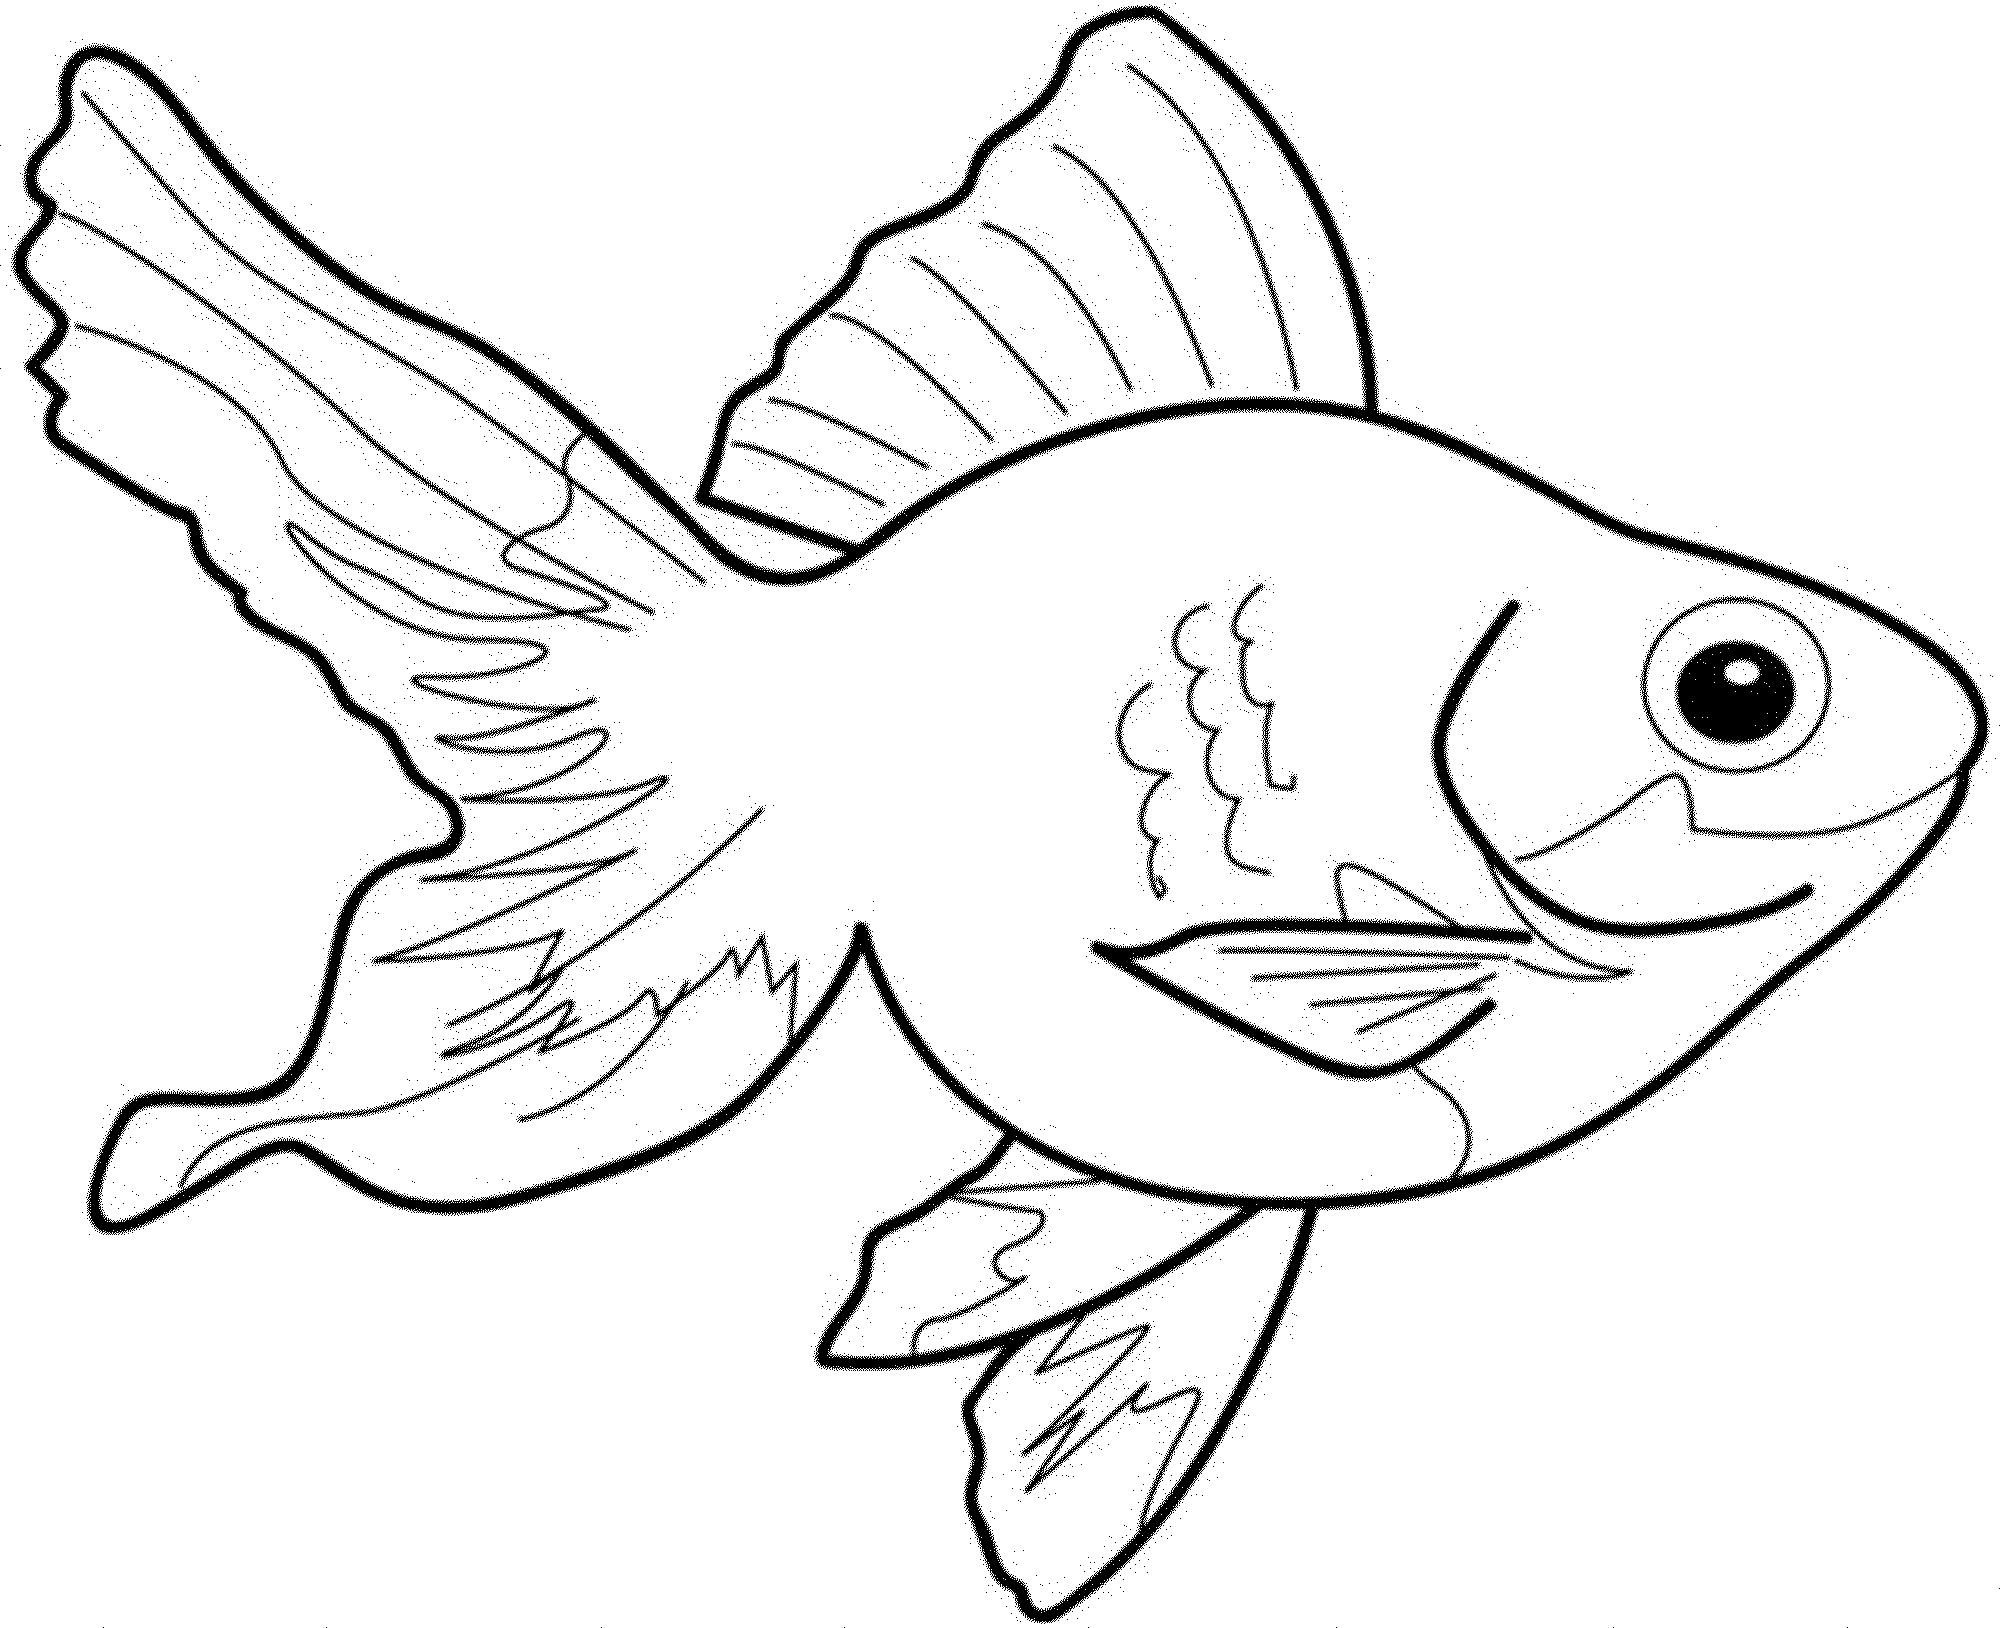 Fishing Northwest Coloring Book - Worksheet & Coloring Pages